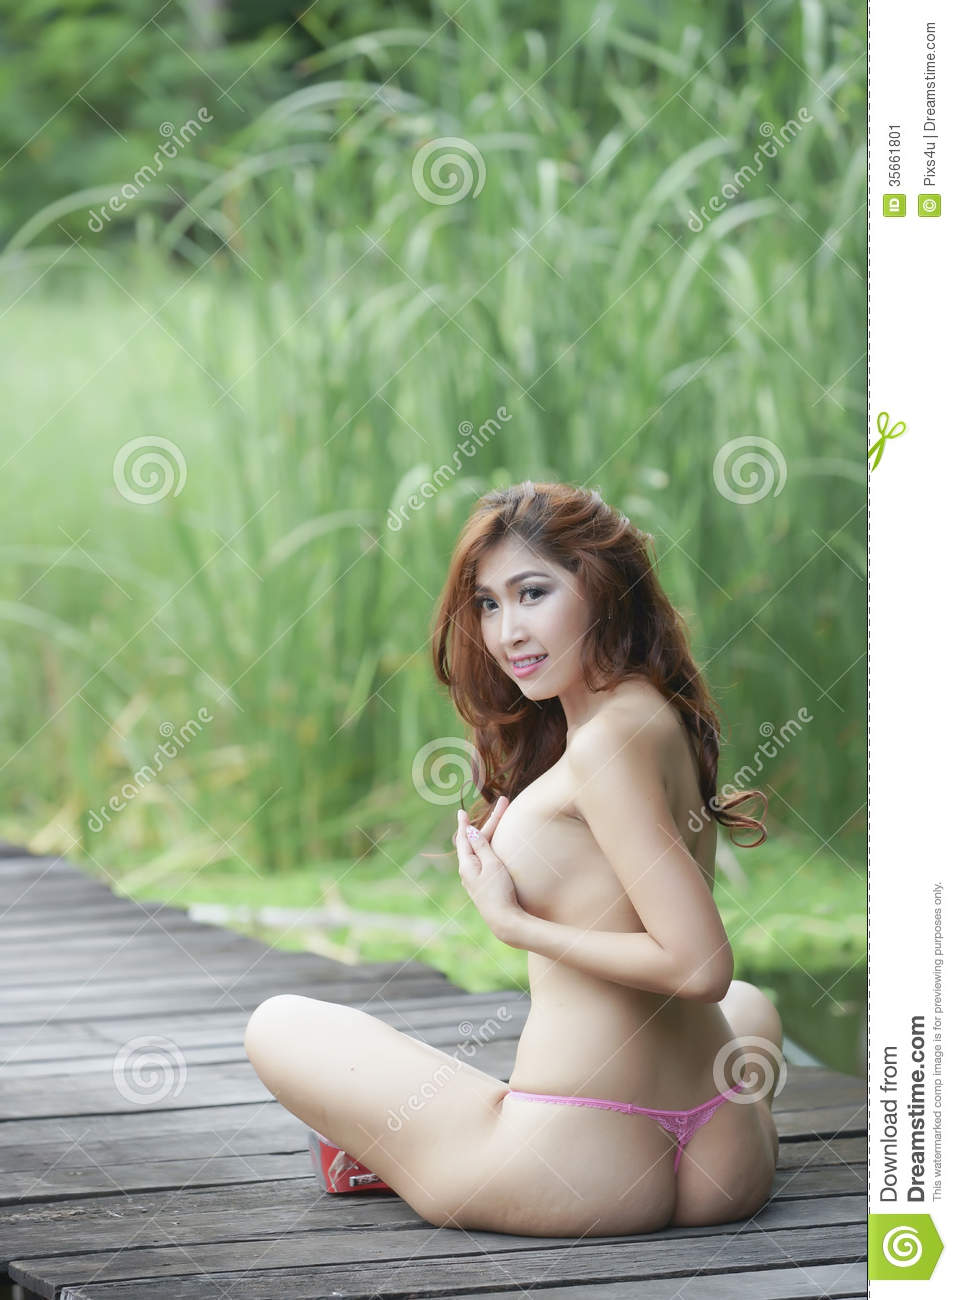 And health beautiful sexy girl topless 2X4 ass